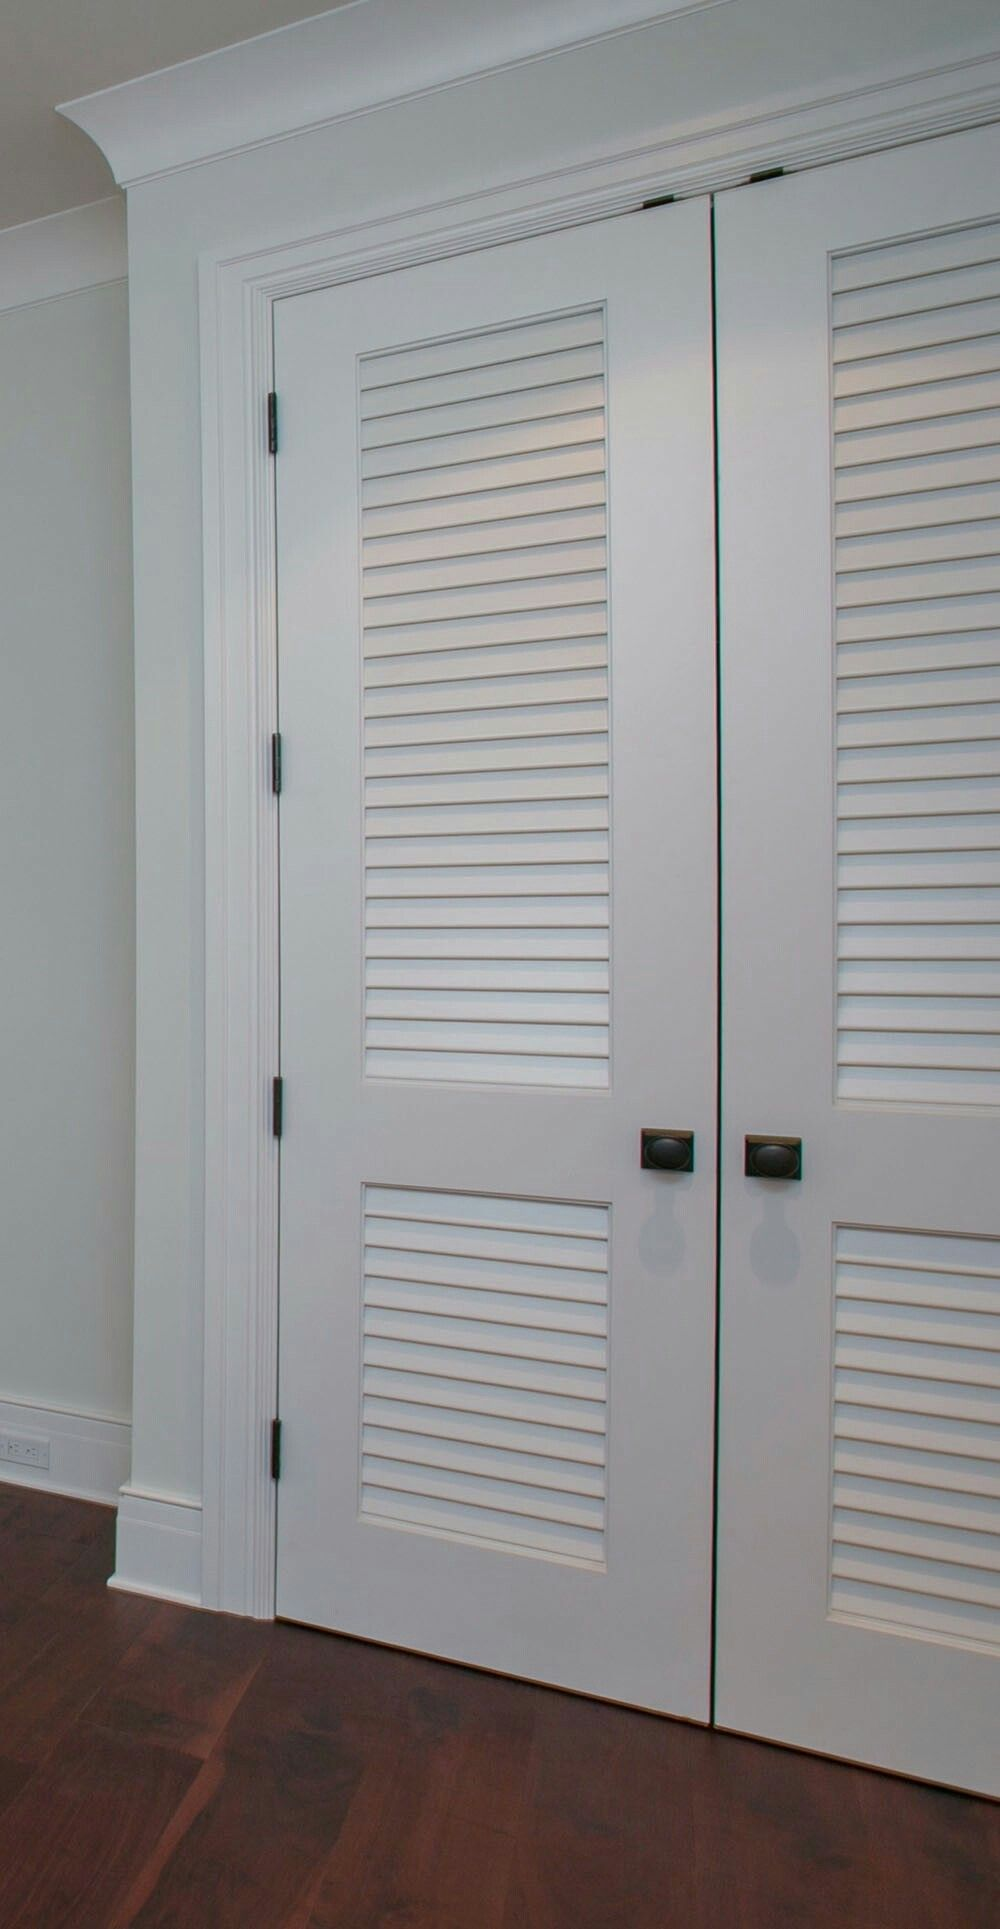 Basement Louvered Door Ventilation from Playroom to Laundry/Utility Room & Basement Louvered Door: Ventilation from Playroom to Laundry ...